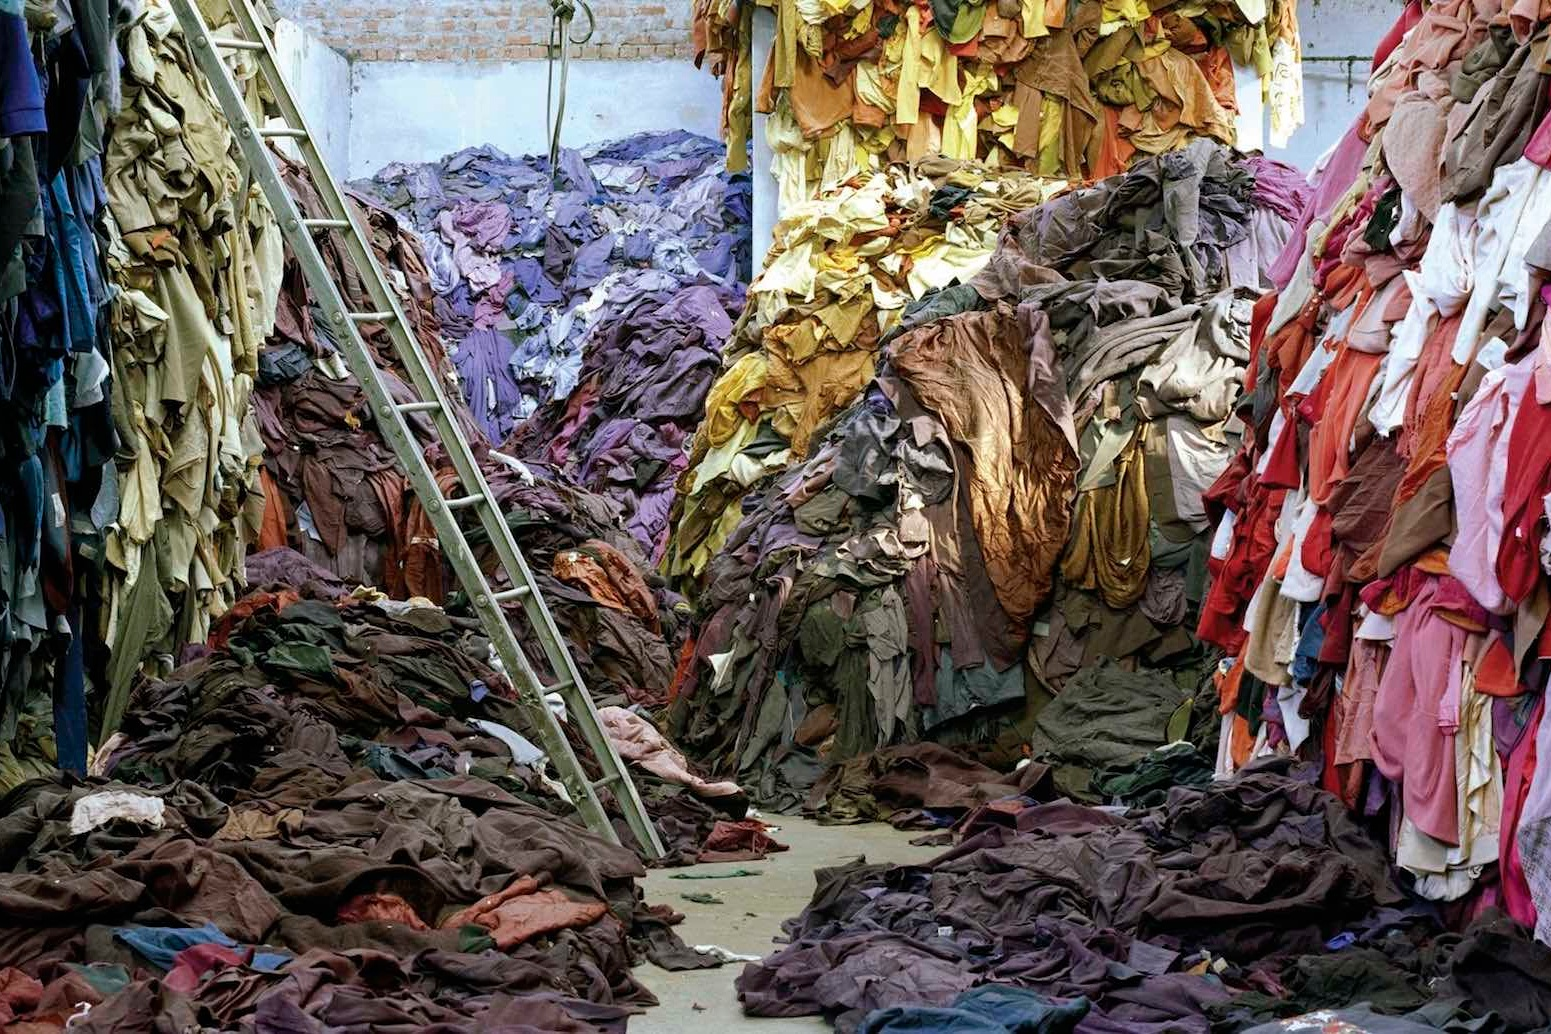 - 80 billion garments are made each year — 11 x the global population